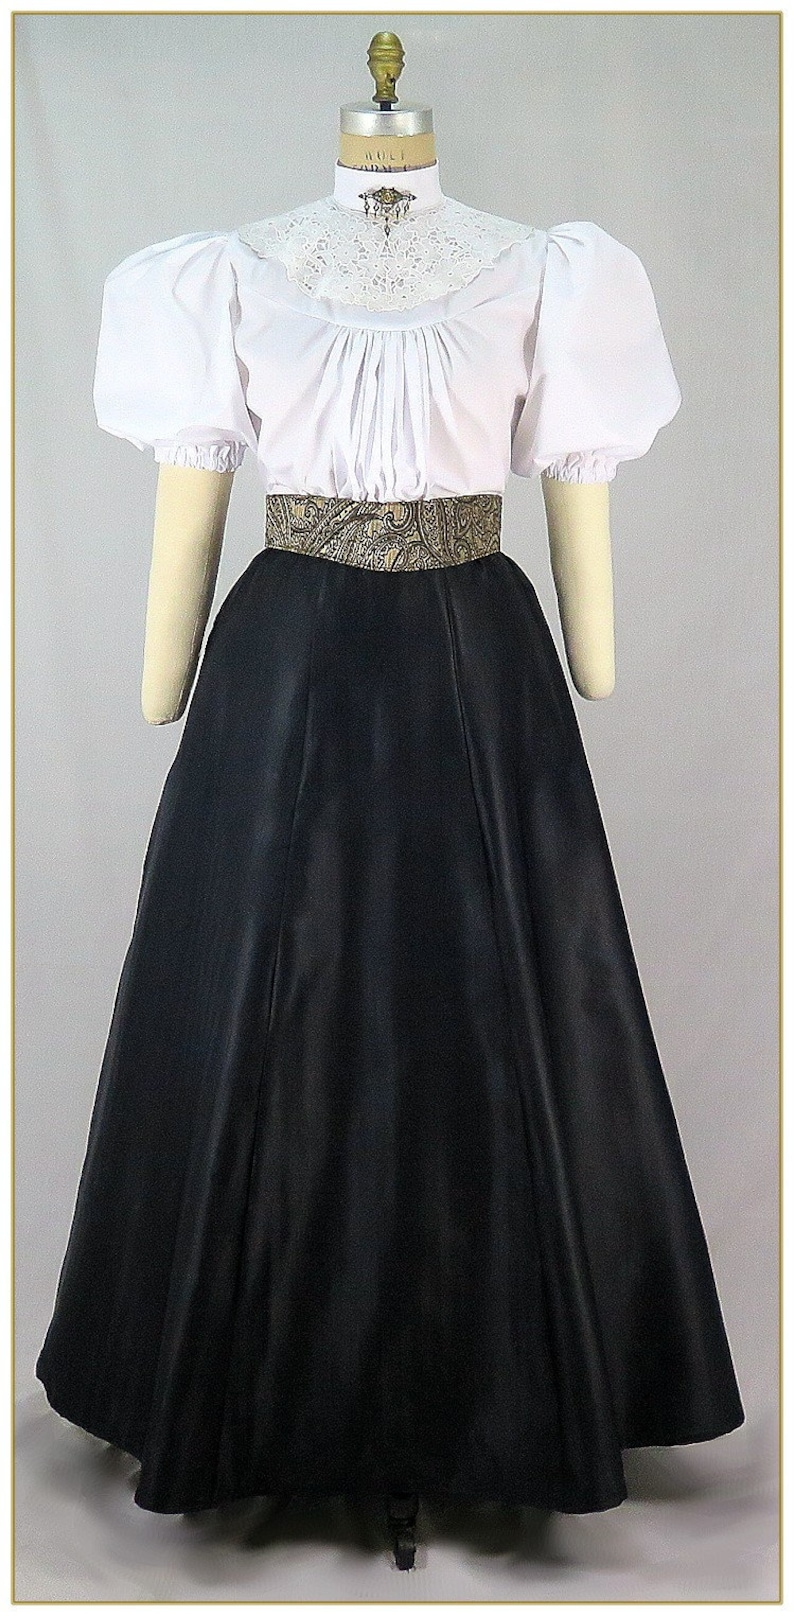 Victorian Skirts | Bustle, Walking, Edwardian Skirts Victorian Black Herringbone Weave Taffeta Skirt $59.00 AT vintagedancer.com